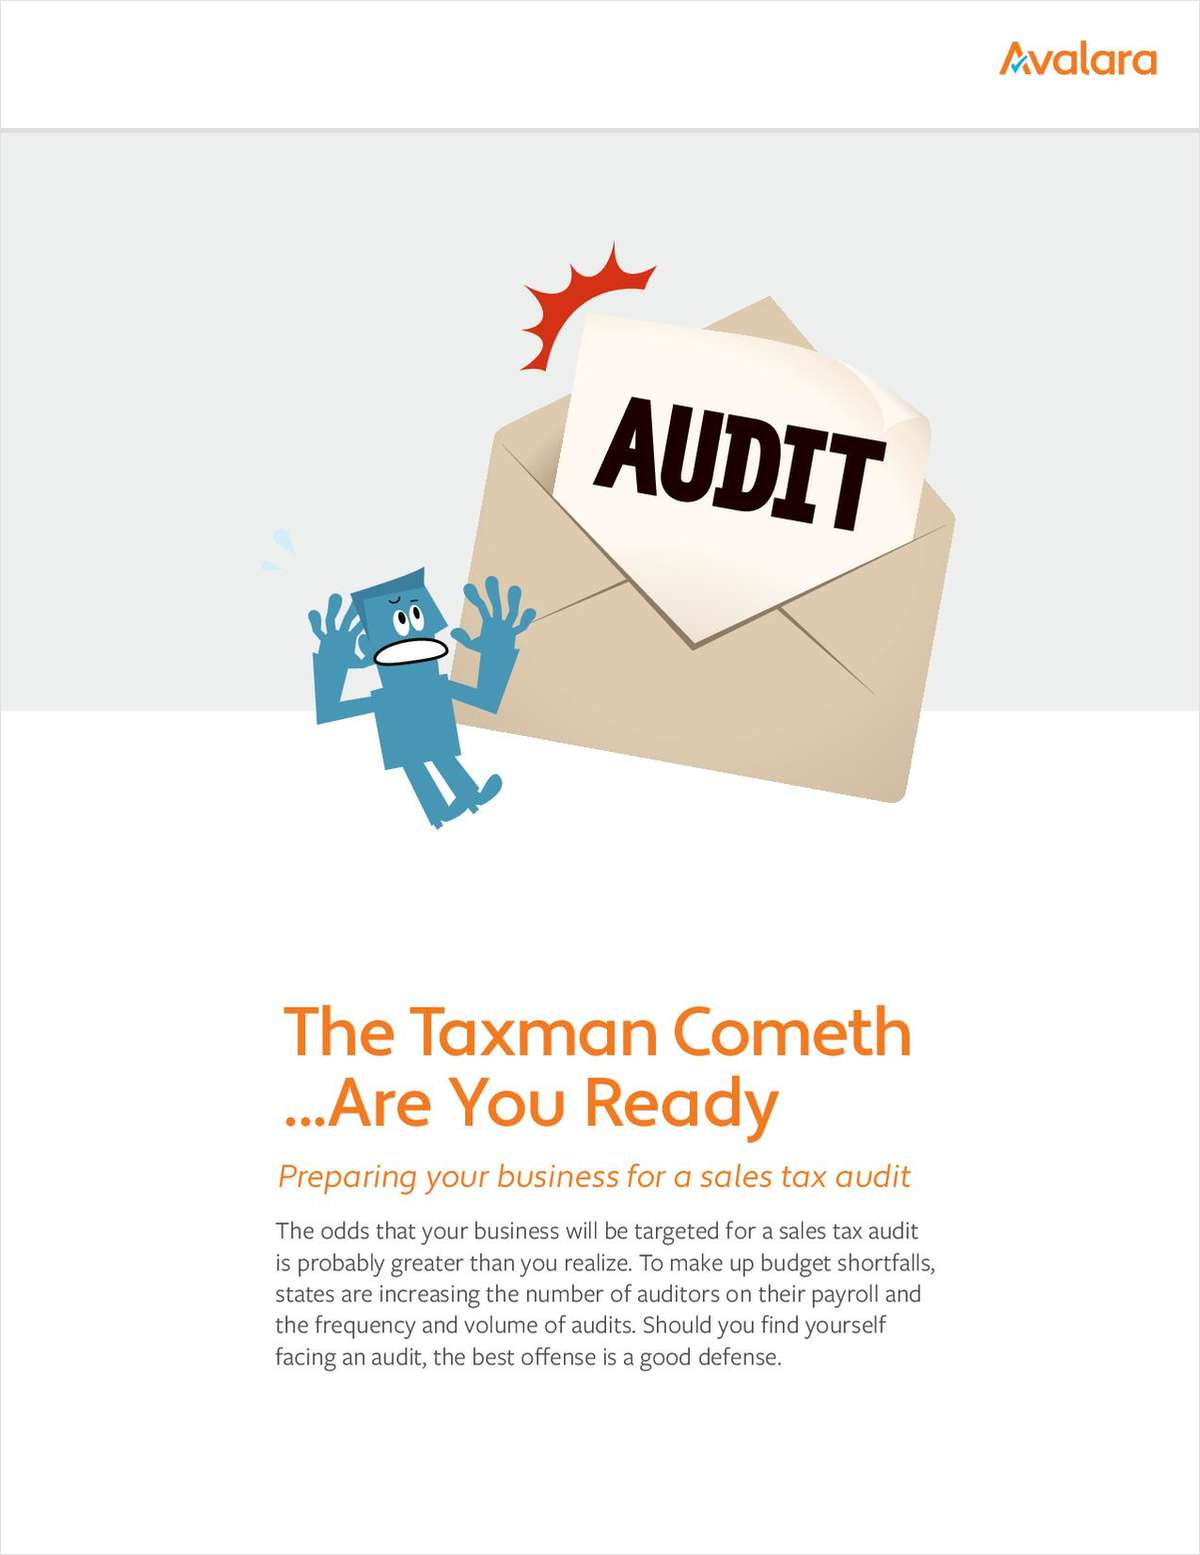 The Taxman Cometh ...Are You Ready?  Preparing your business for a sales tax audit.